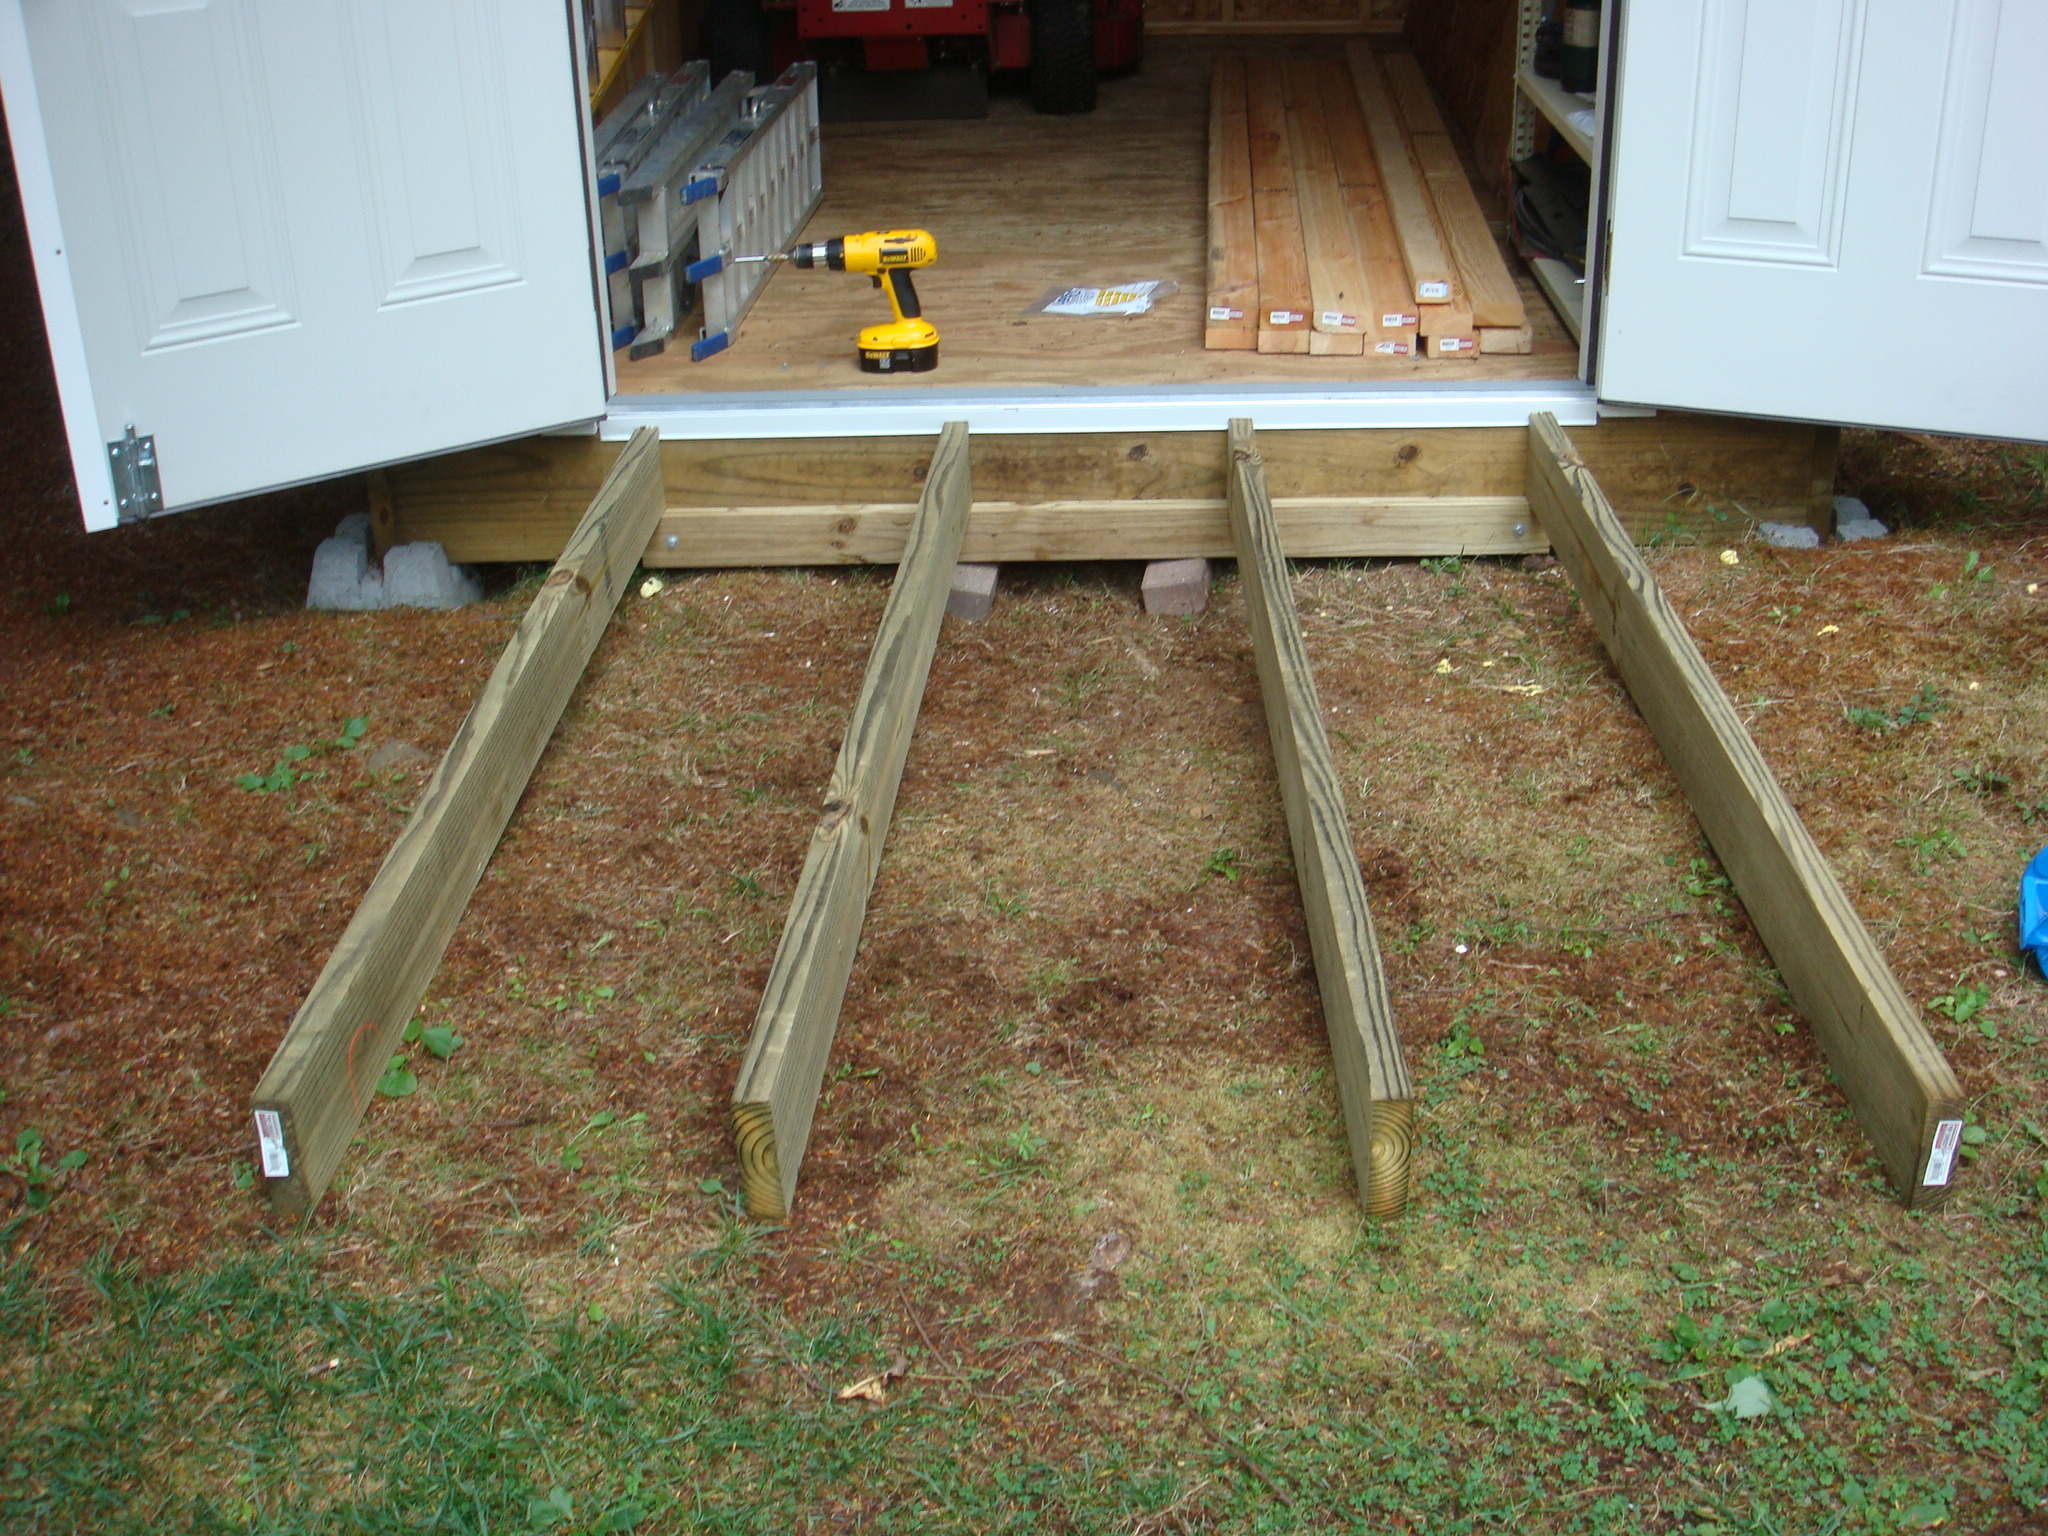 Permalink to how to build a small shed out of wood